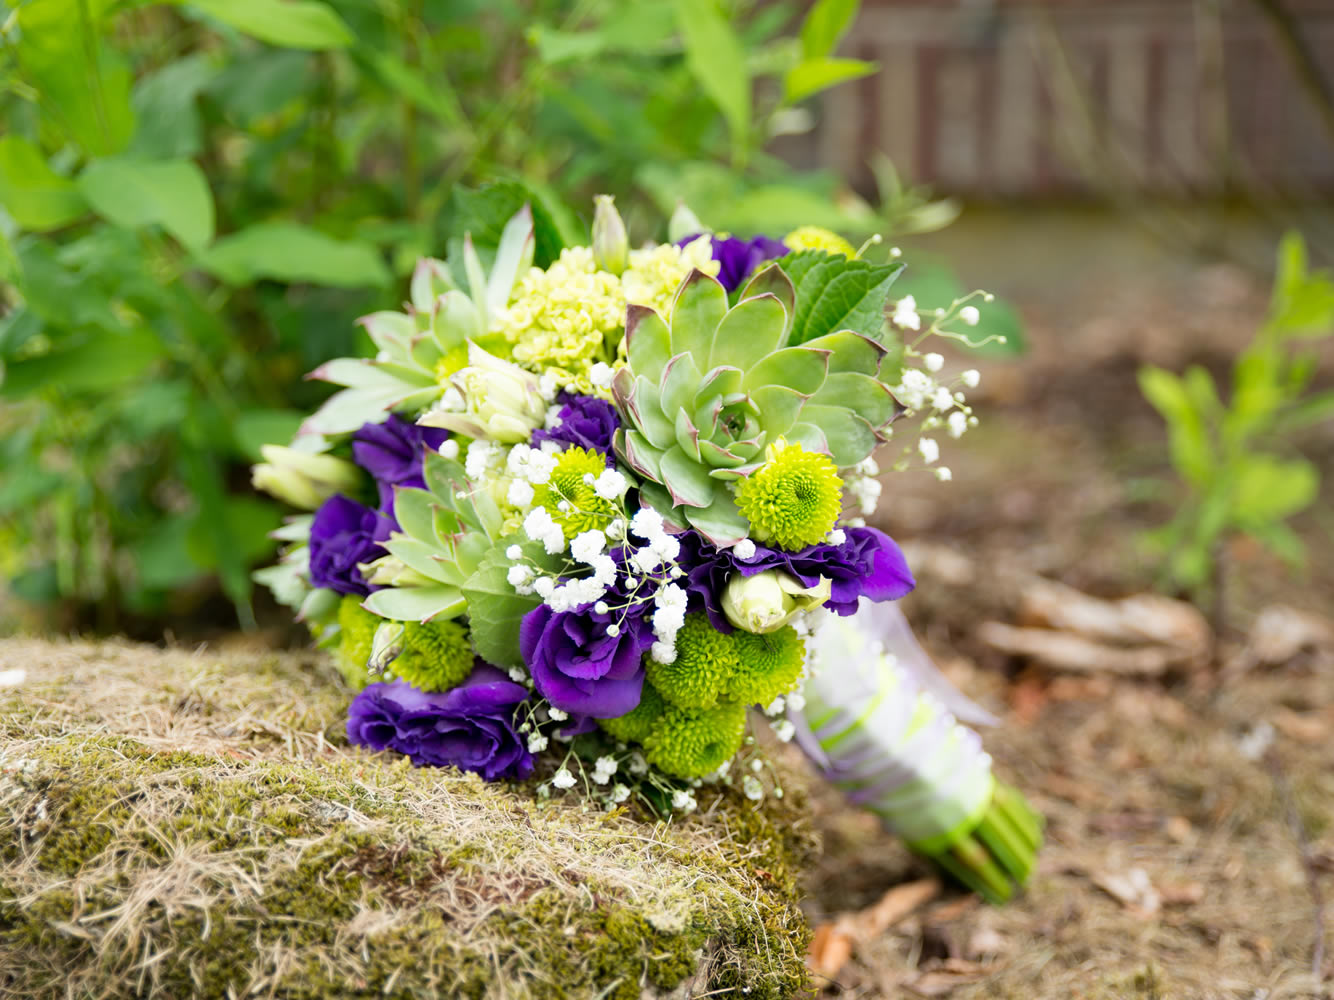 Wedding Flowers, Wedding Planning, Day Of Coordination, Delivery, Chelan Bride, Venue, Photographer, Bouquets, Lake Chelan, Wenatchee, Leavenworth, Puyallup, Tacoma, Seattle